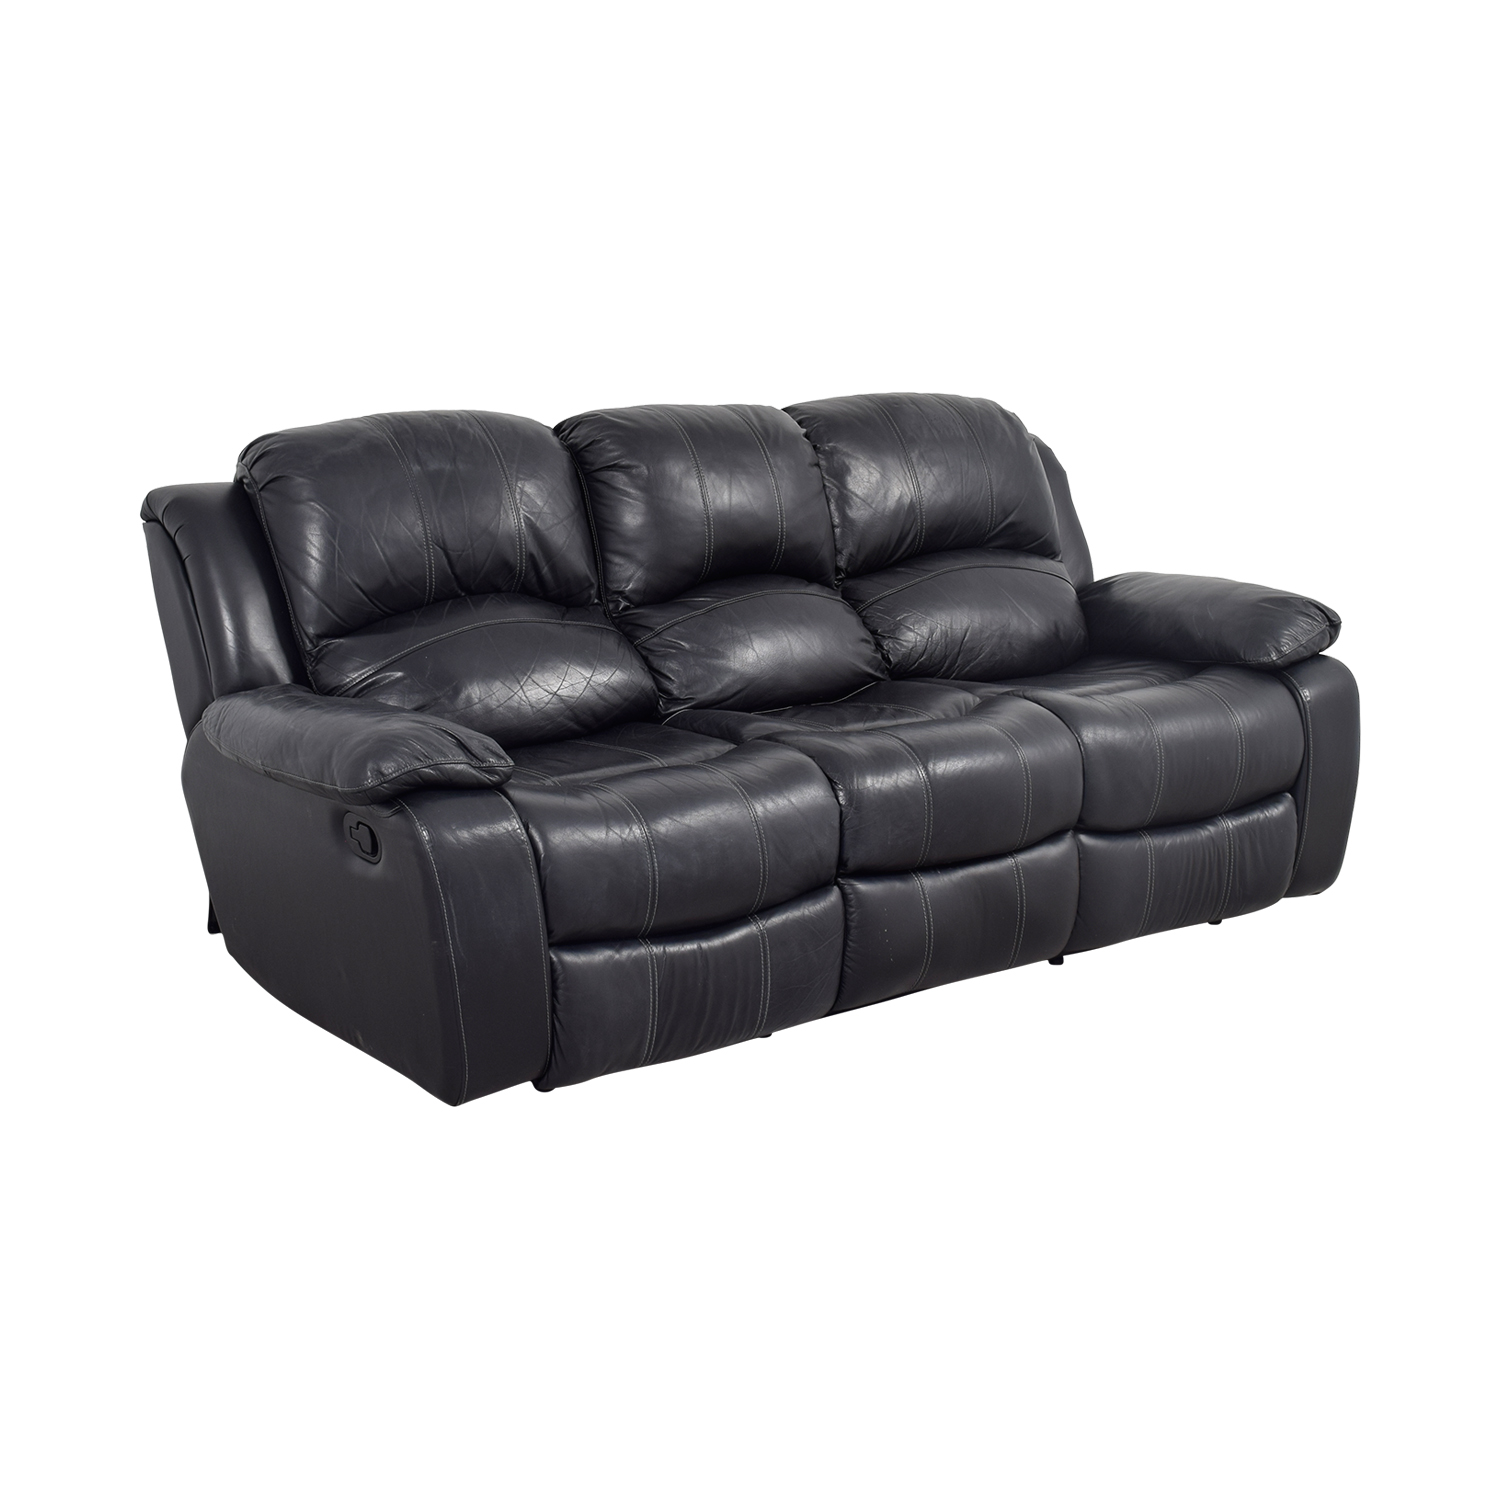 70 Off Black Leather Reclining Sofa Sofas